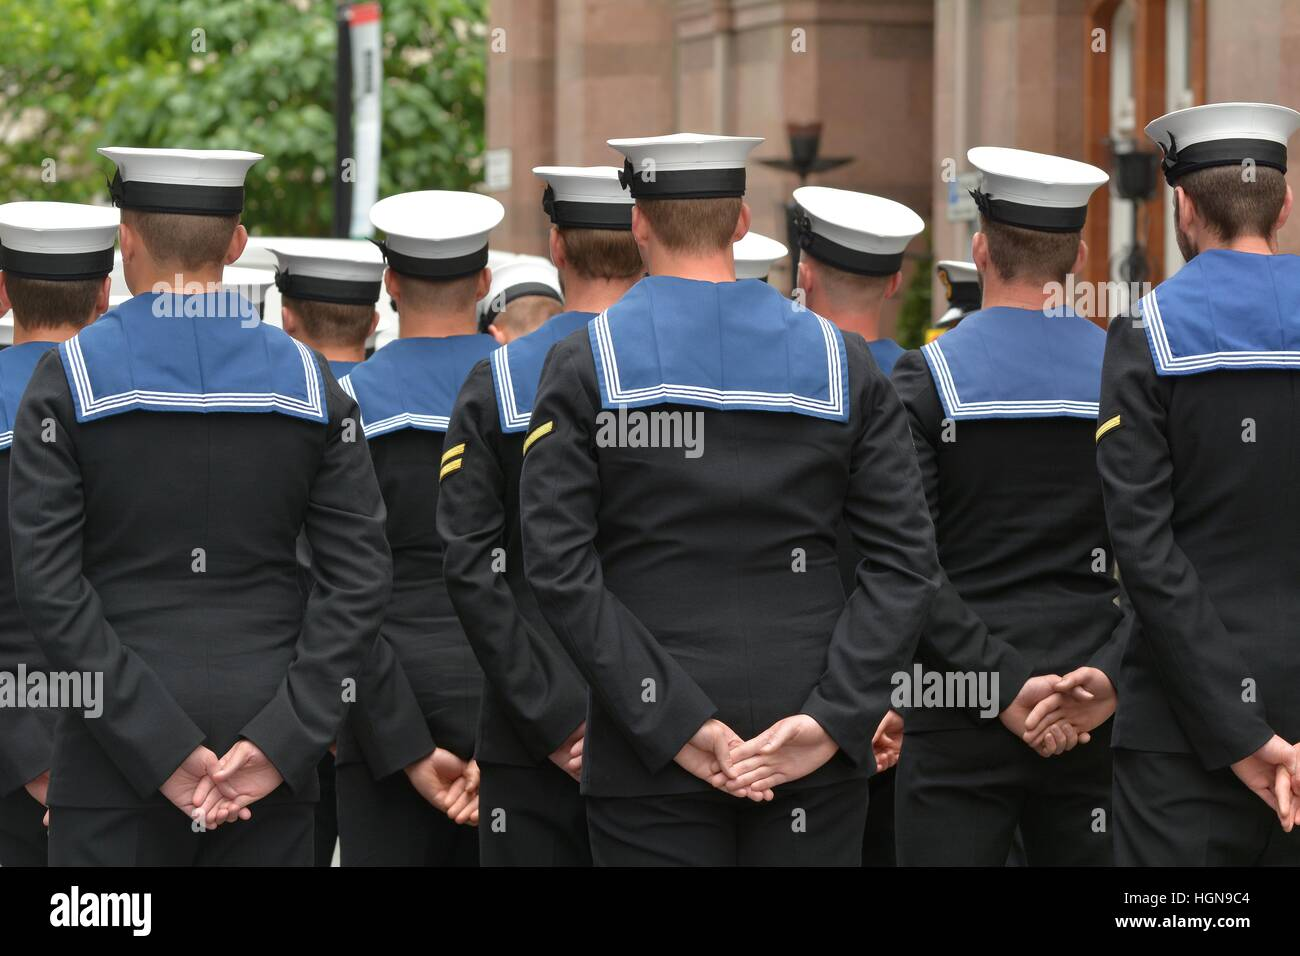 Battle of the Somme commemoration parade in Manchester - Stock Image